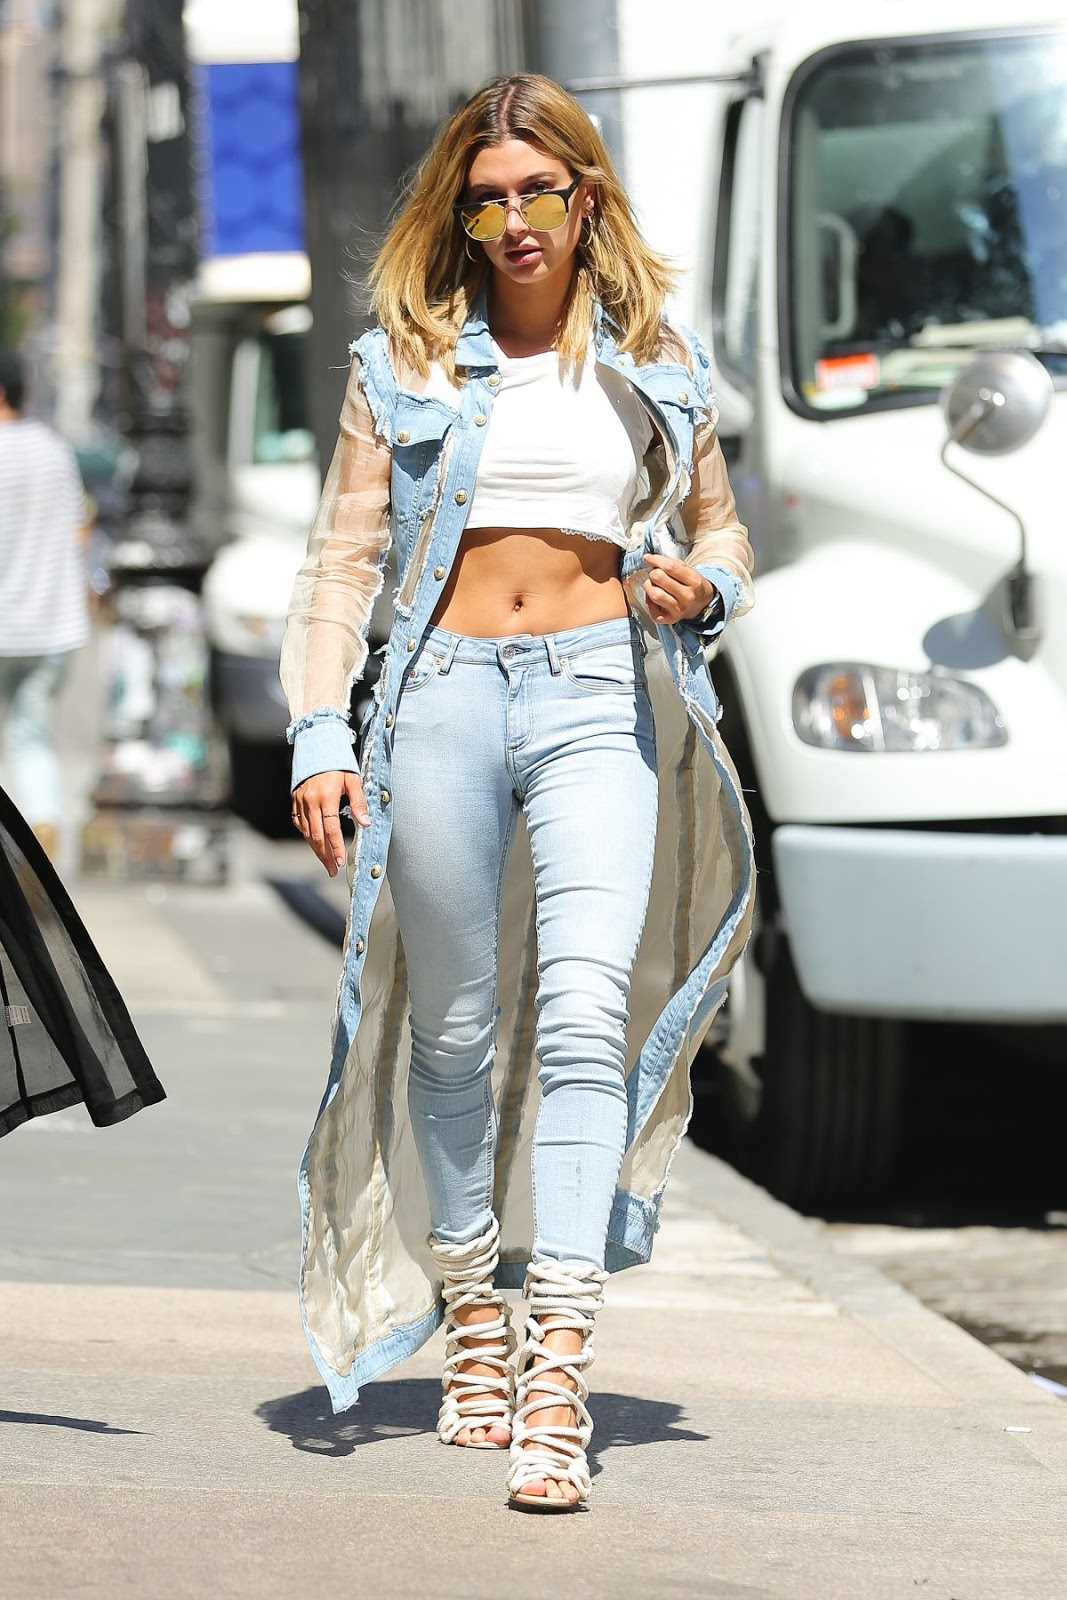 Google Beverly Hills Hailey Baldwin Street Style Out In New York August 24